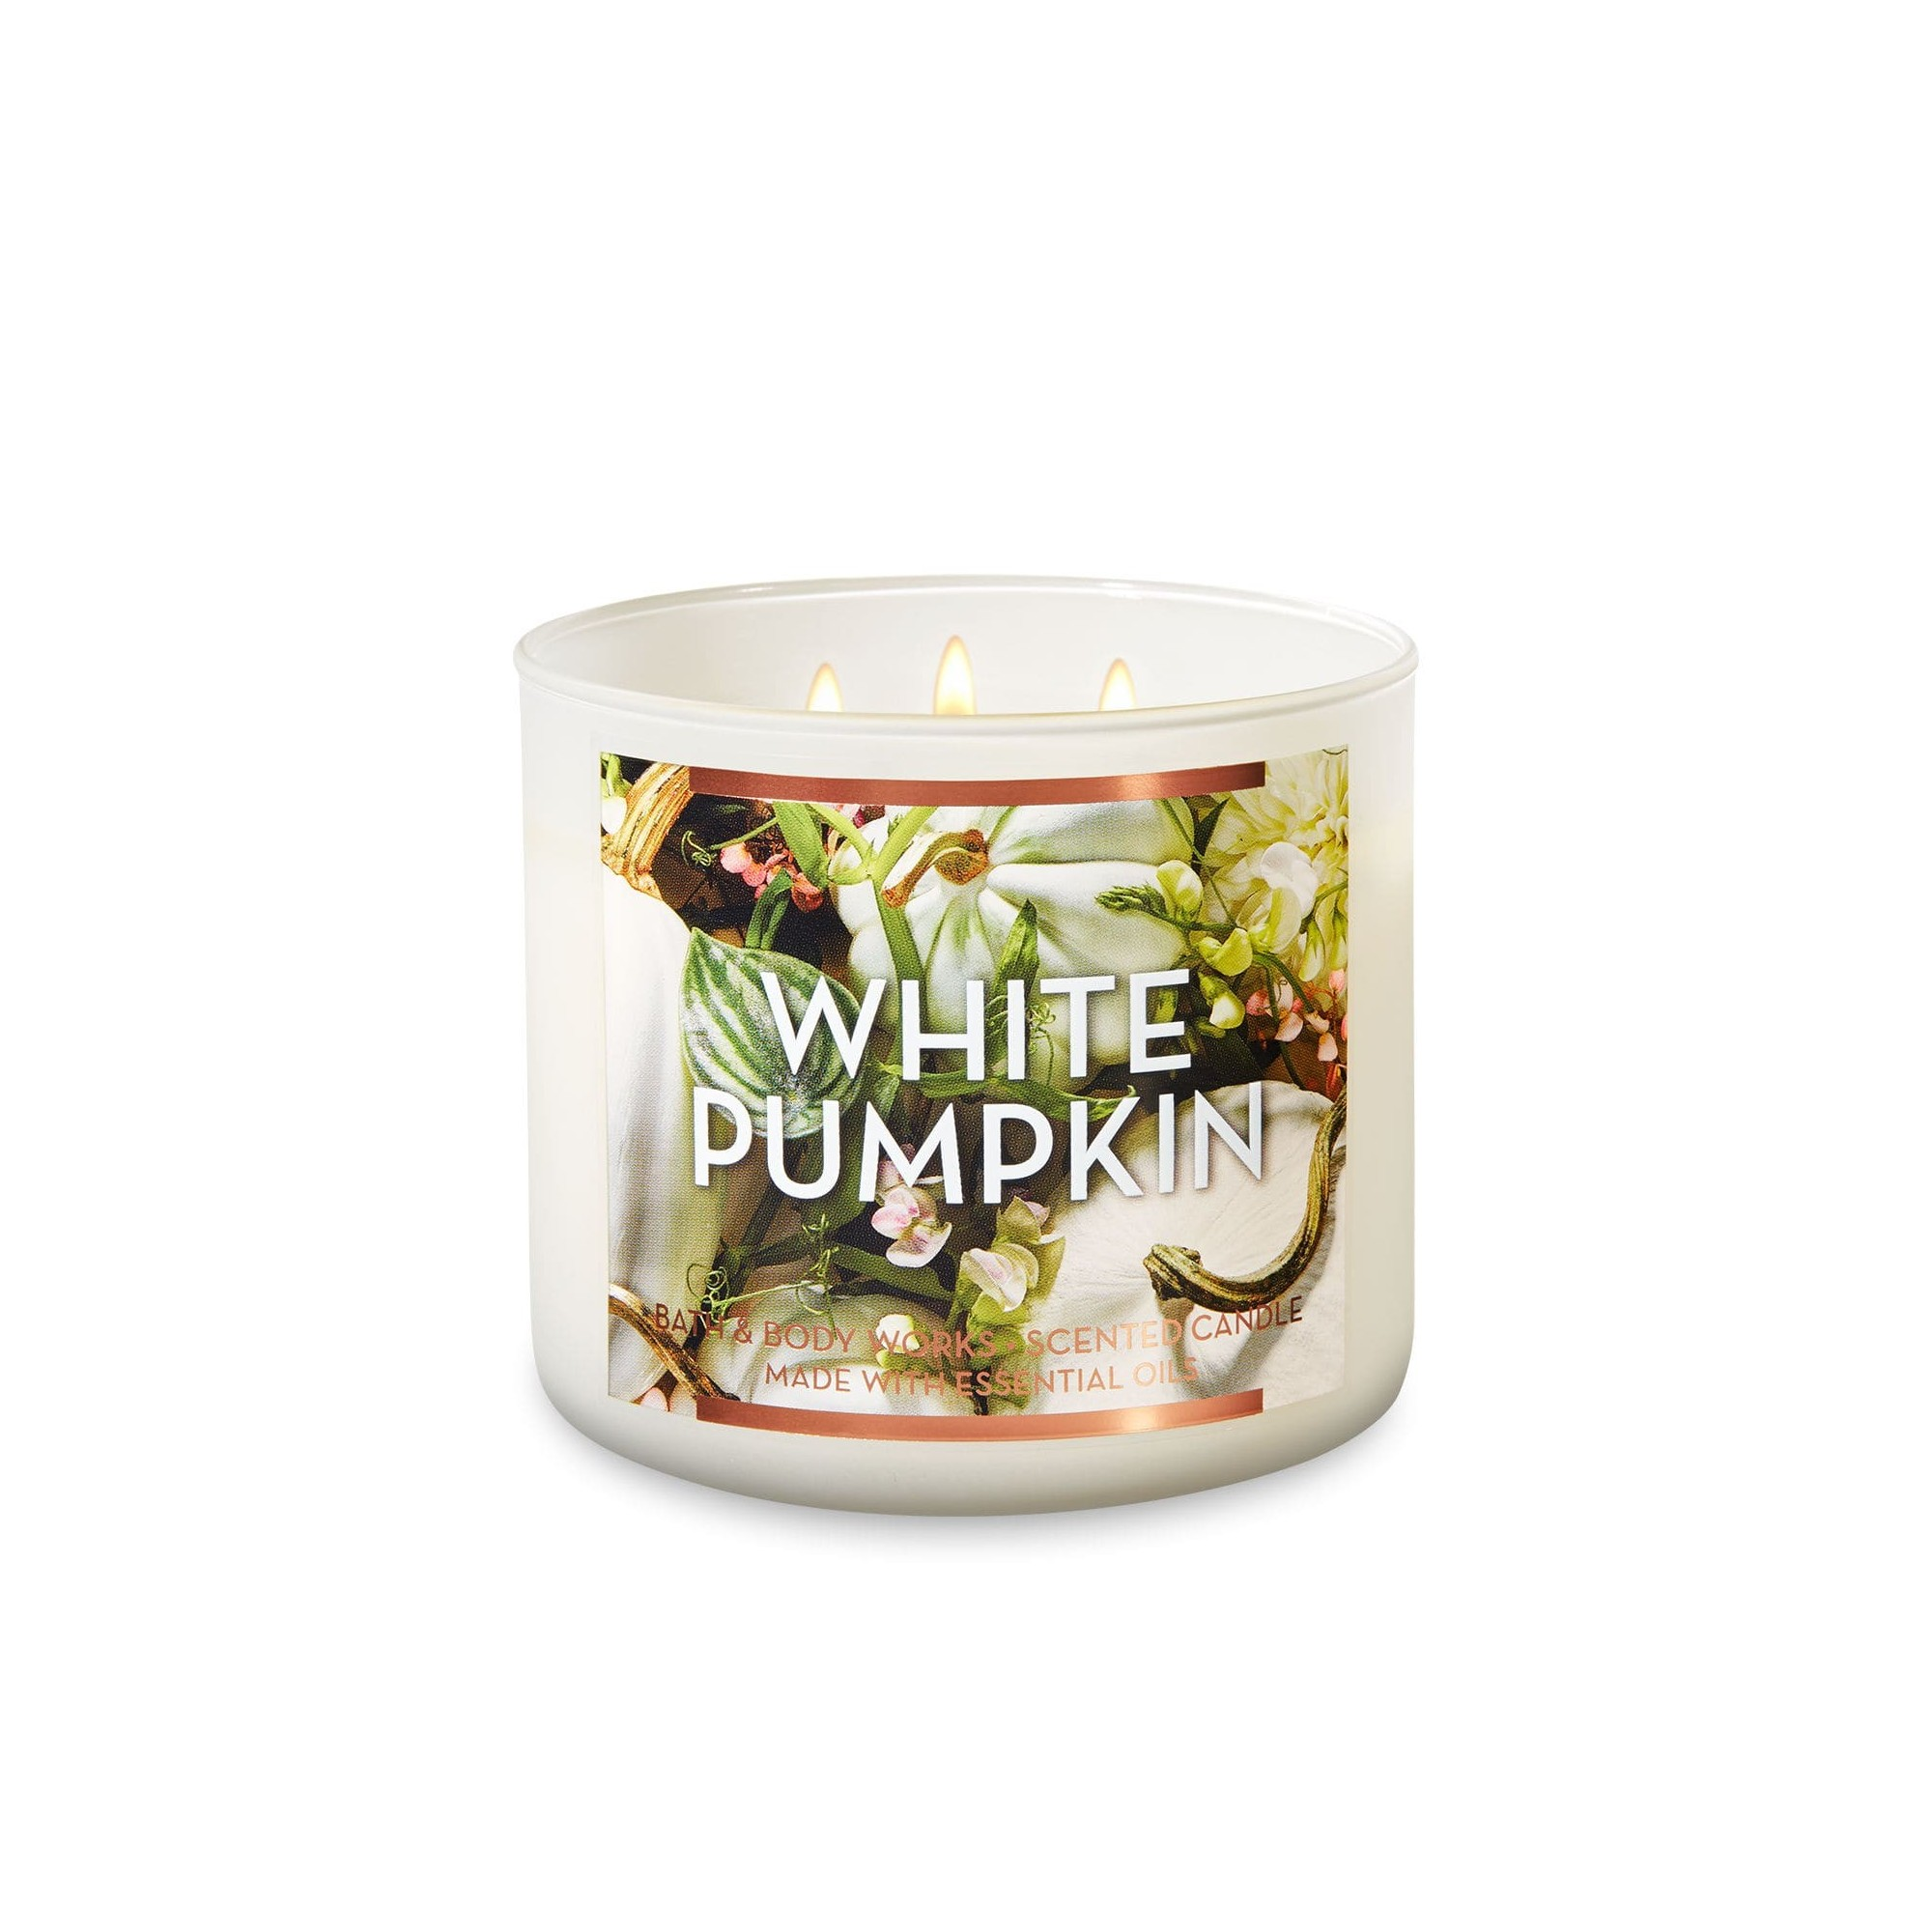 Bath & Body Works White Pumpkin 3 Wick Scented Candle